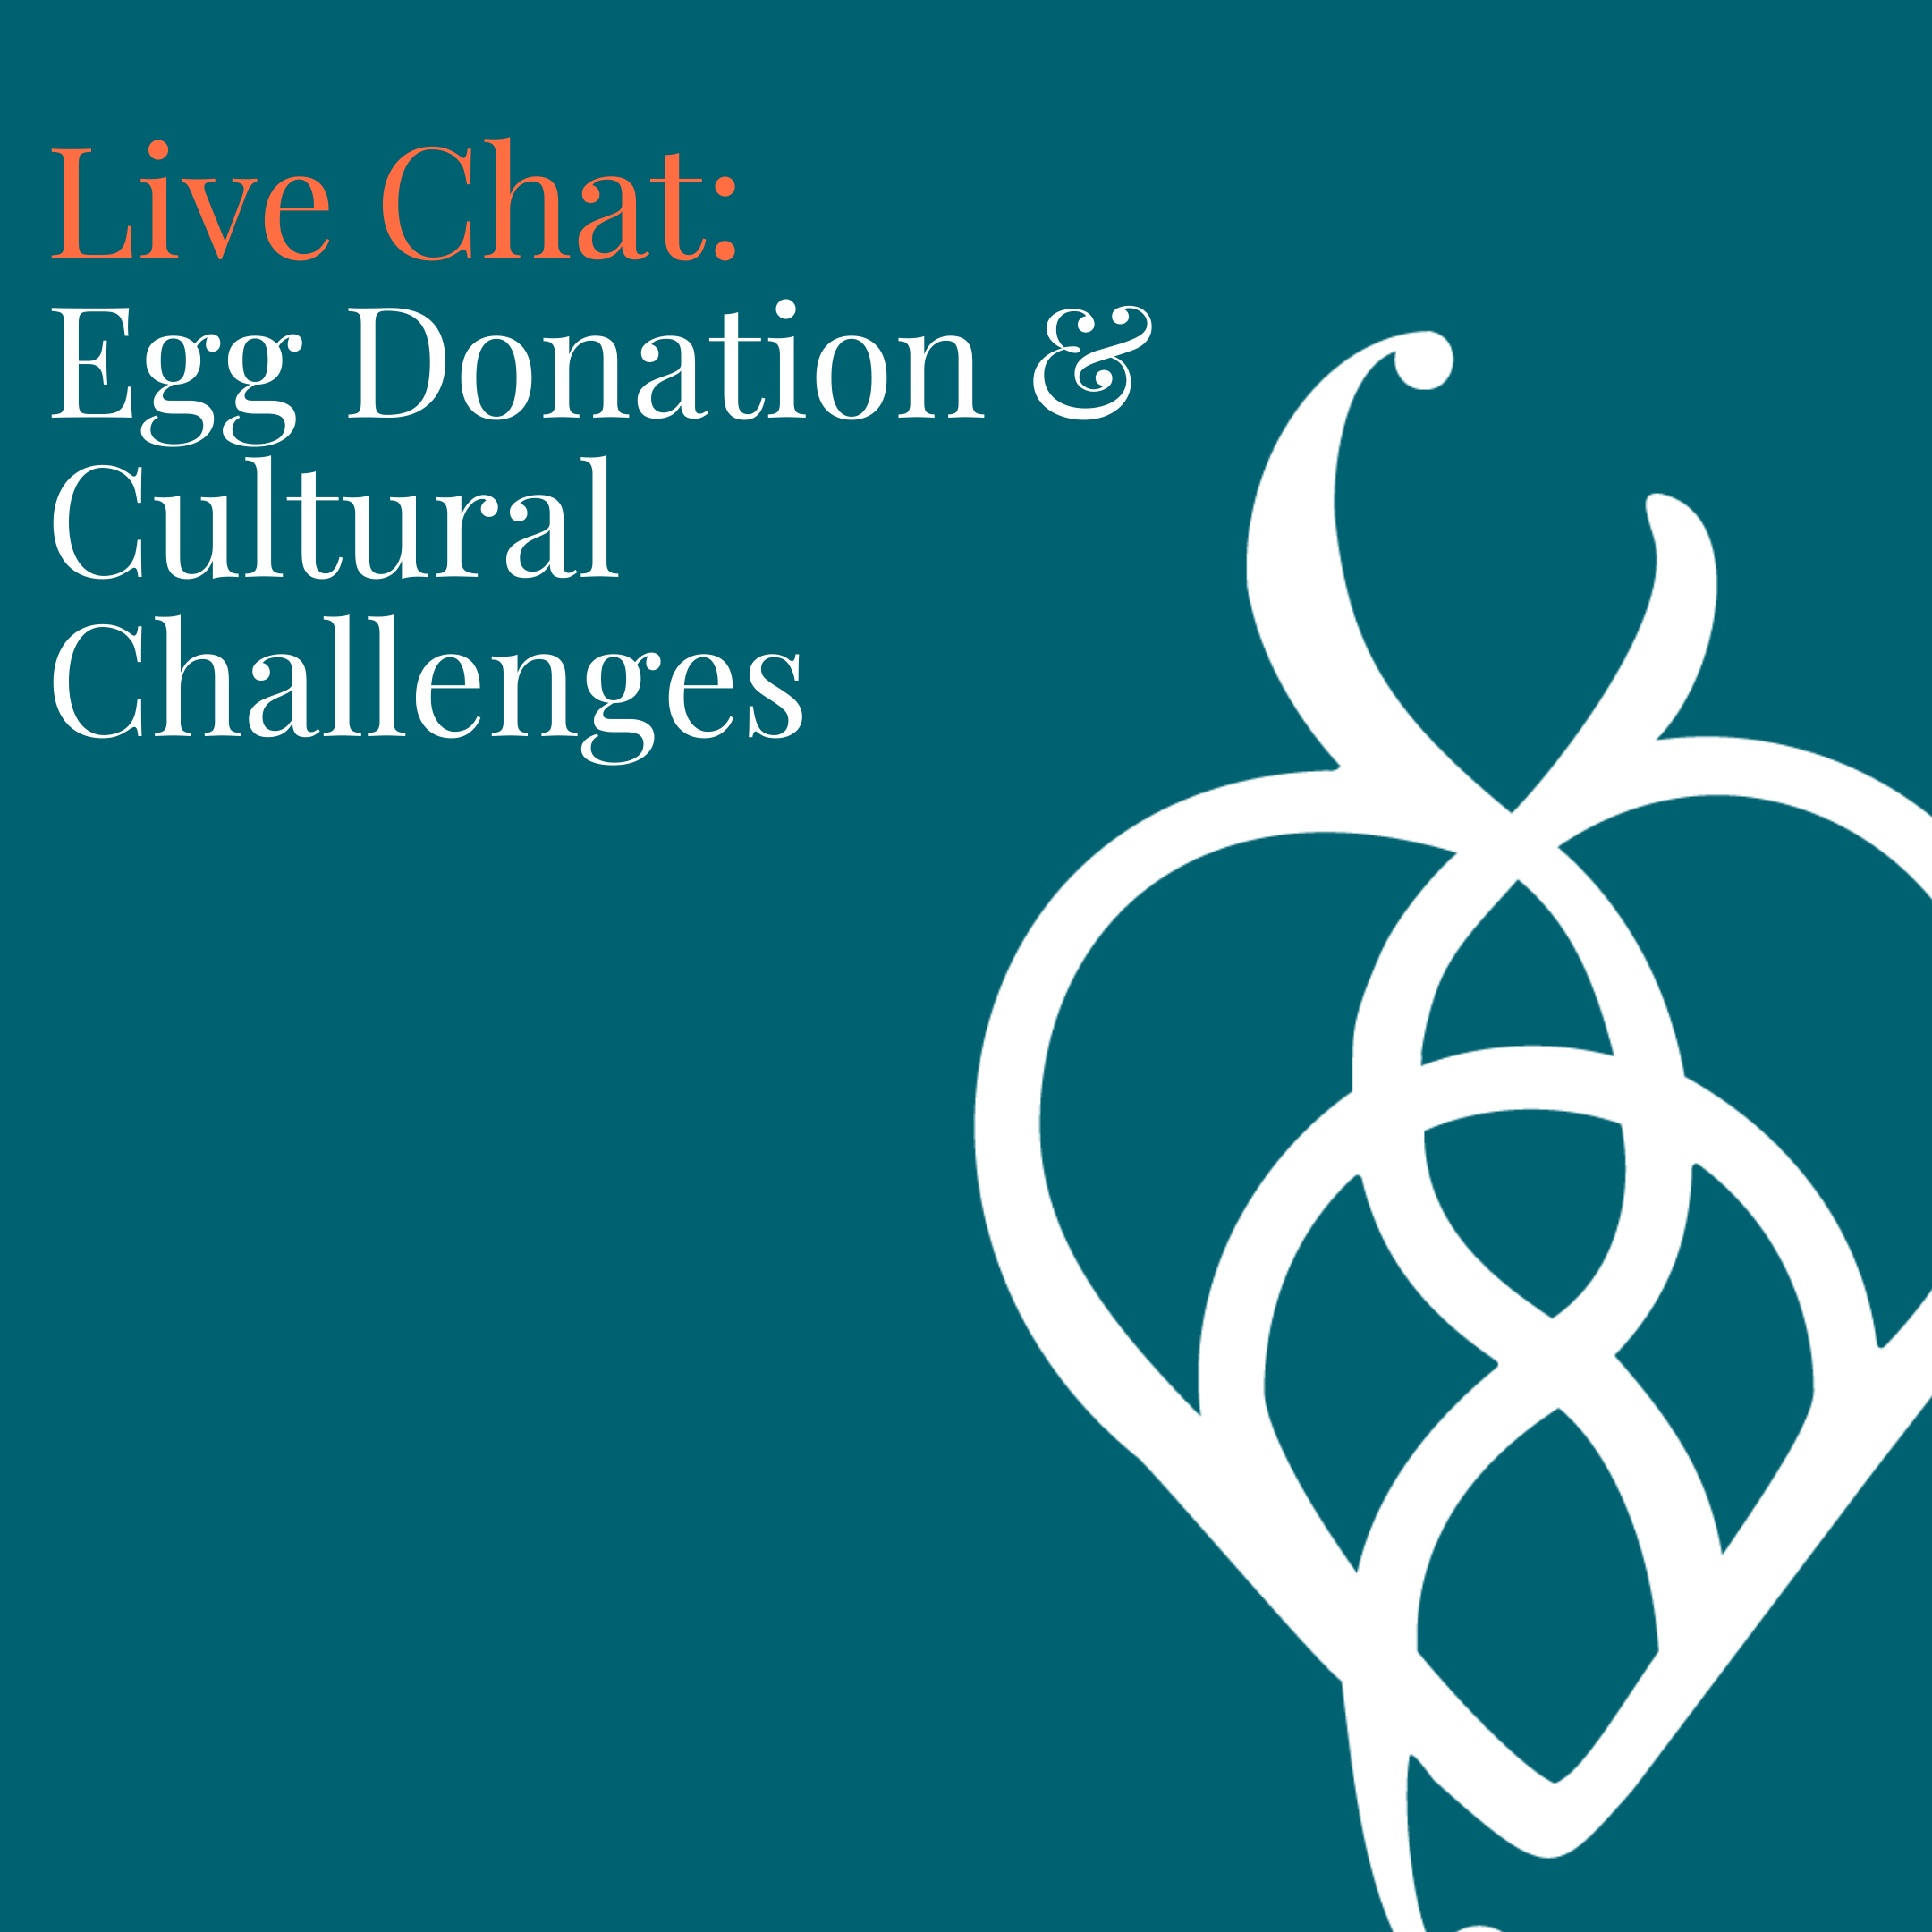 Egg Donation and cultural challenges